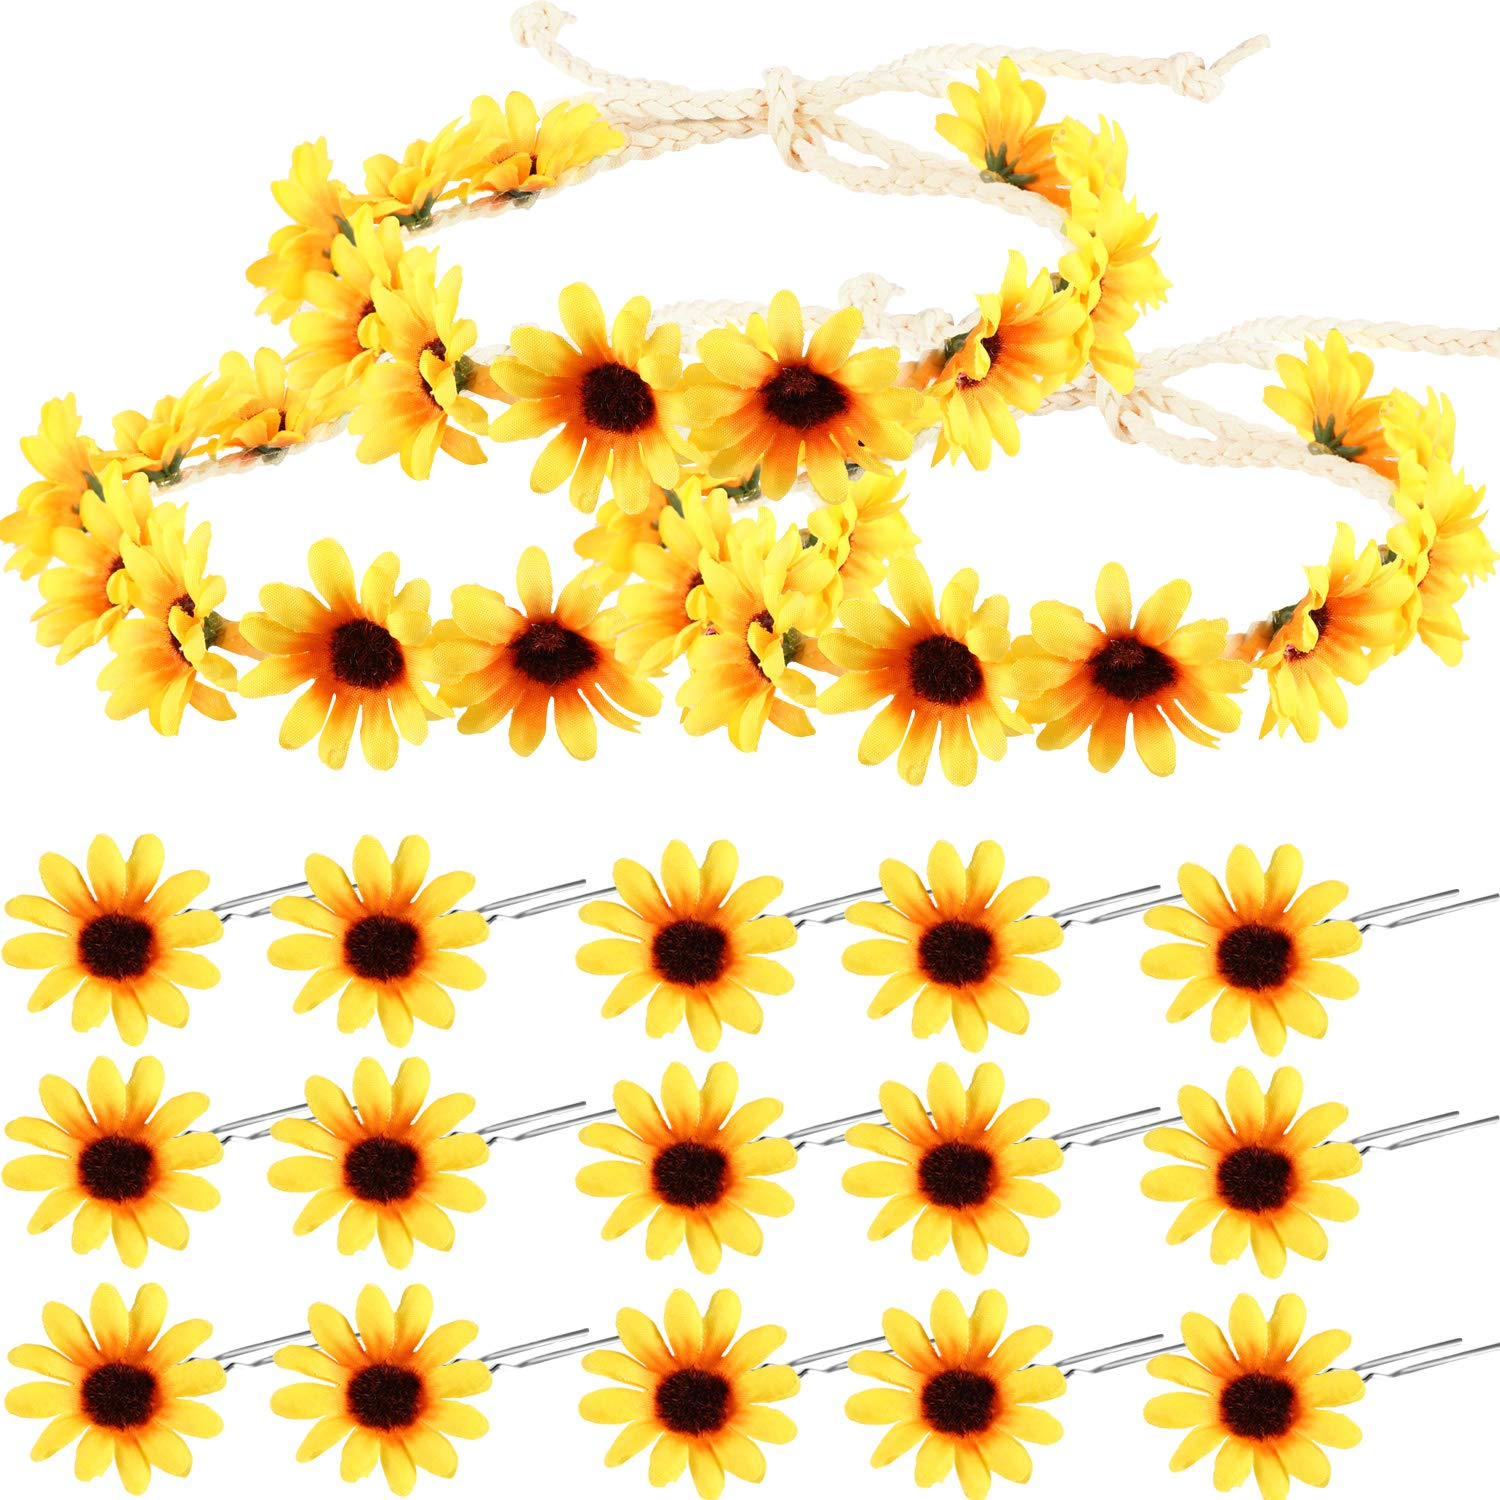 Sunflower Headband Wreath Crown and Hair Cli Limited price 67% OFF of fixed price